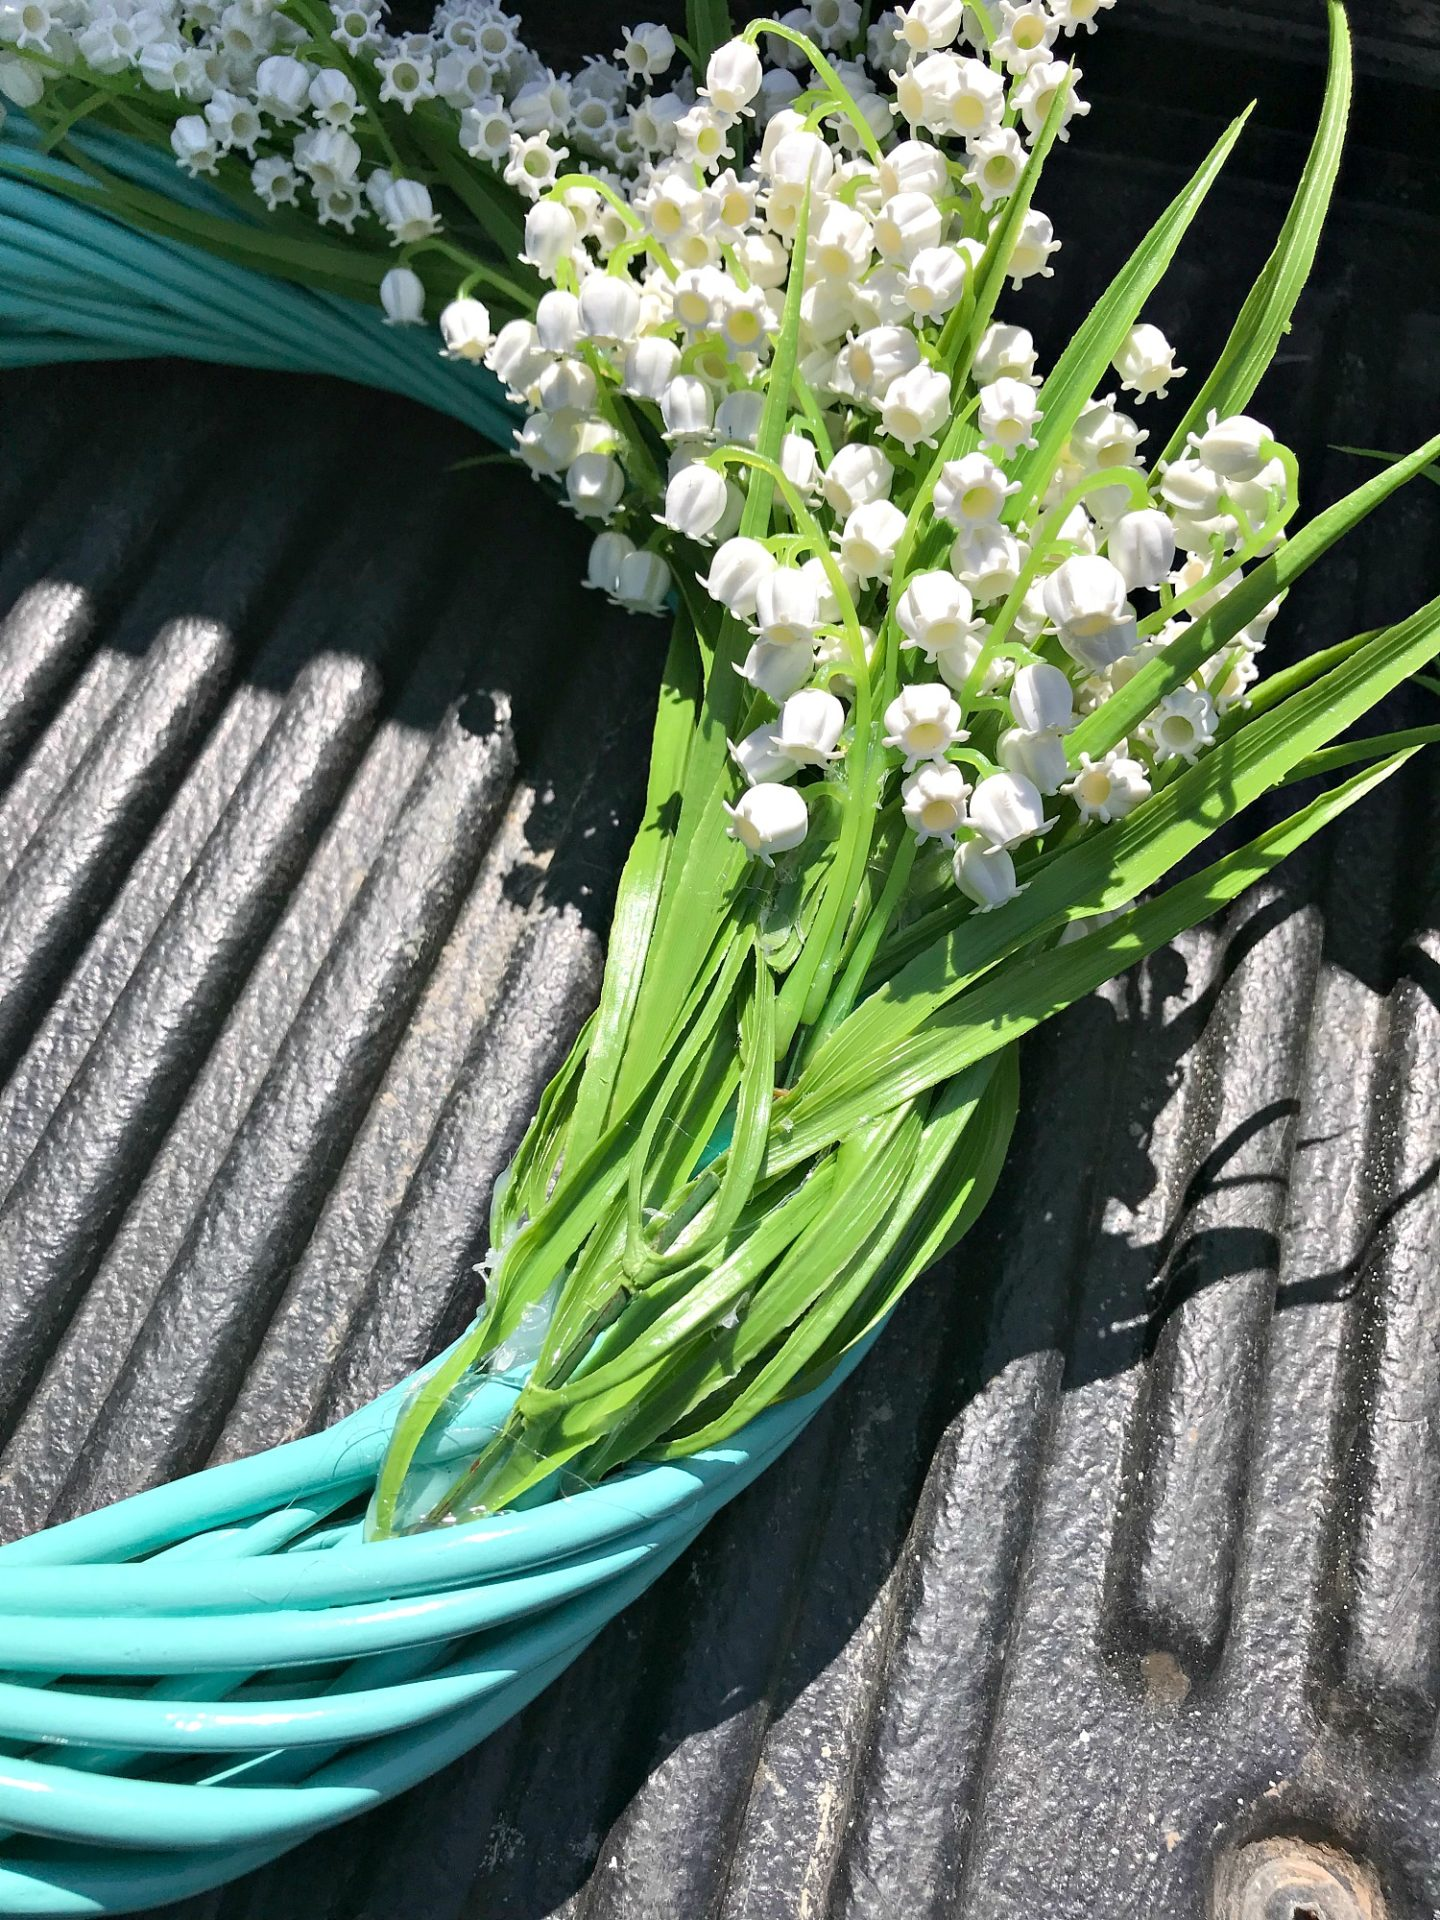 How to Make an Easy DIY Faux Flower Wreath | Turquoise Lily of the Valley Wreath